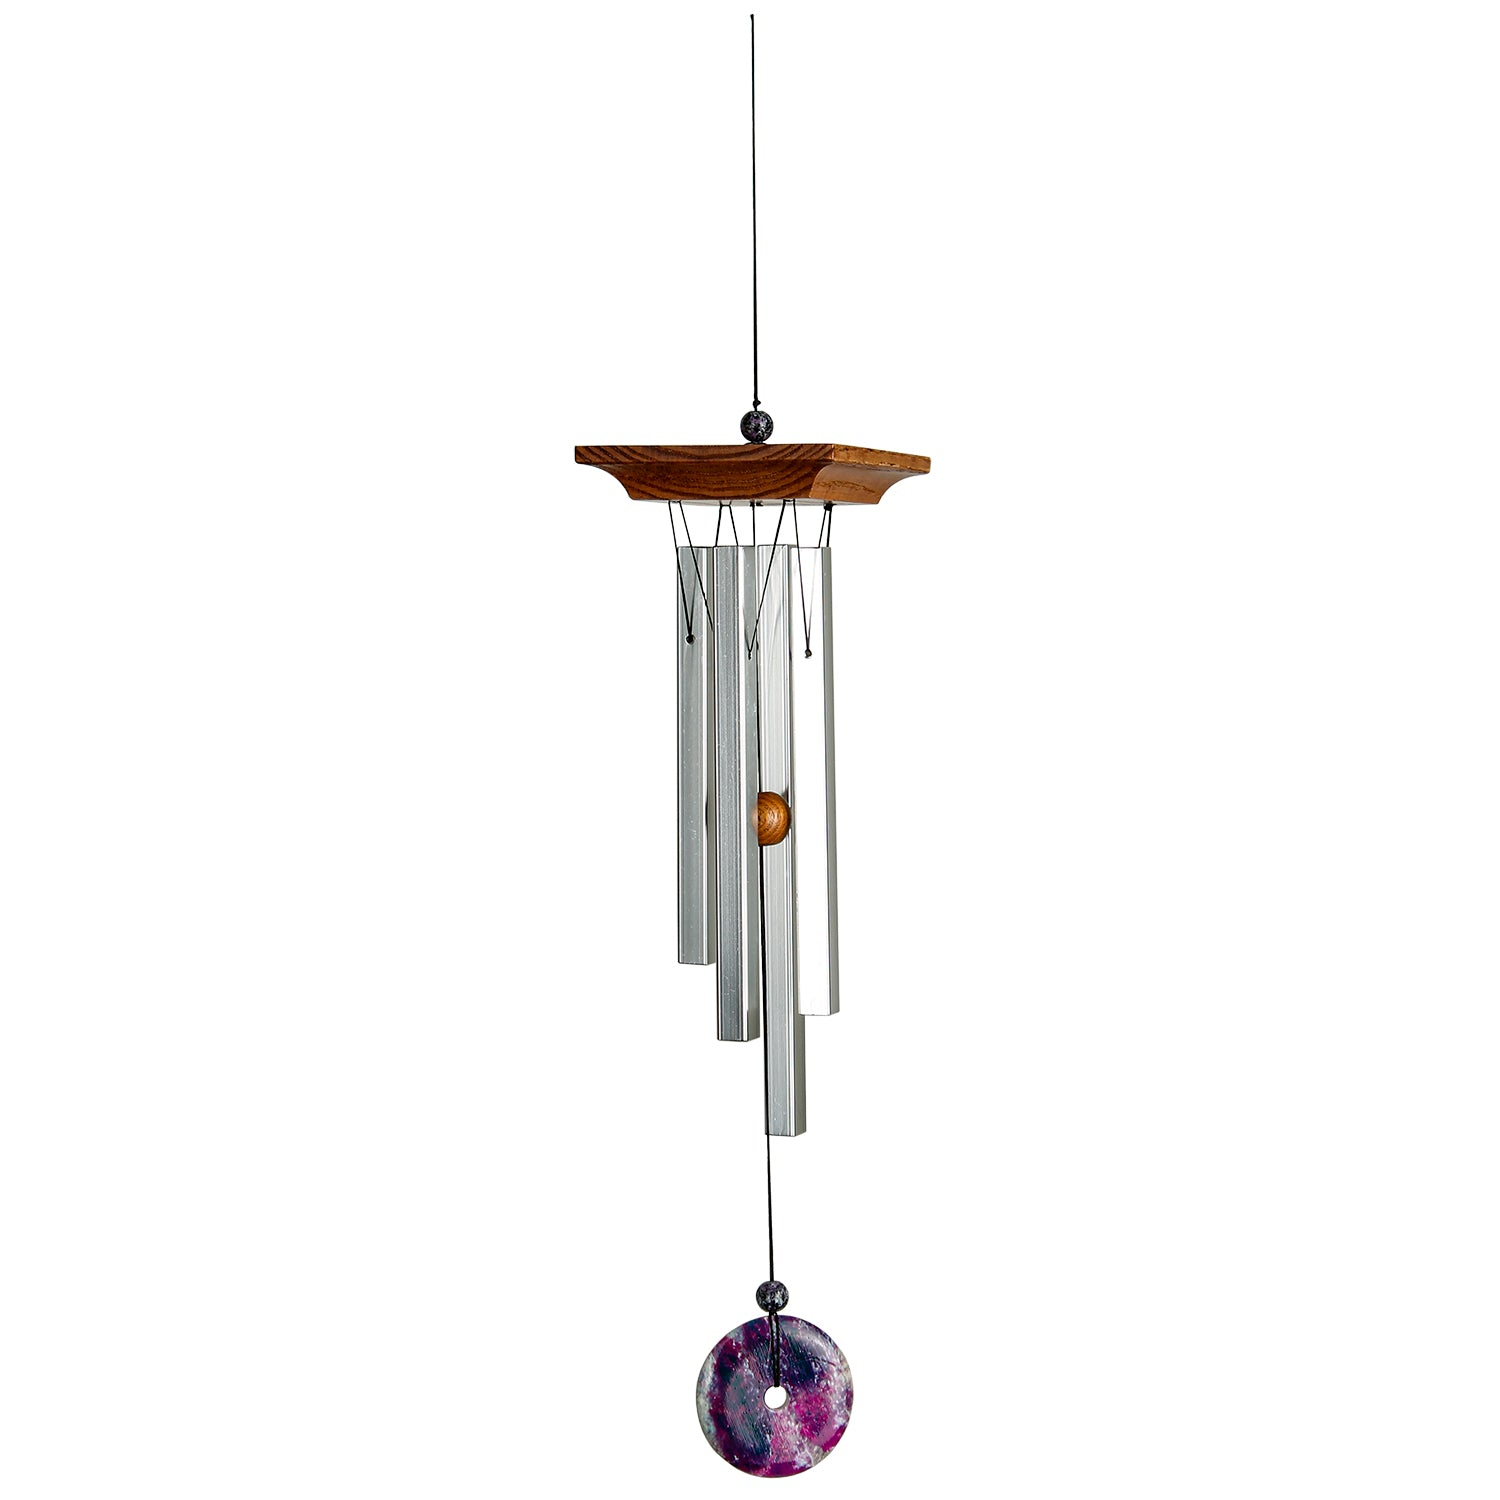 Amethyst Chime - Small full product image